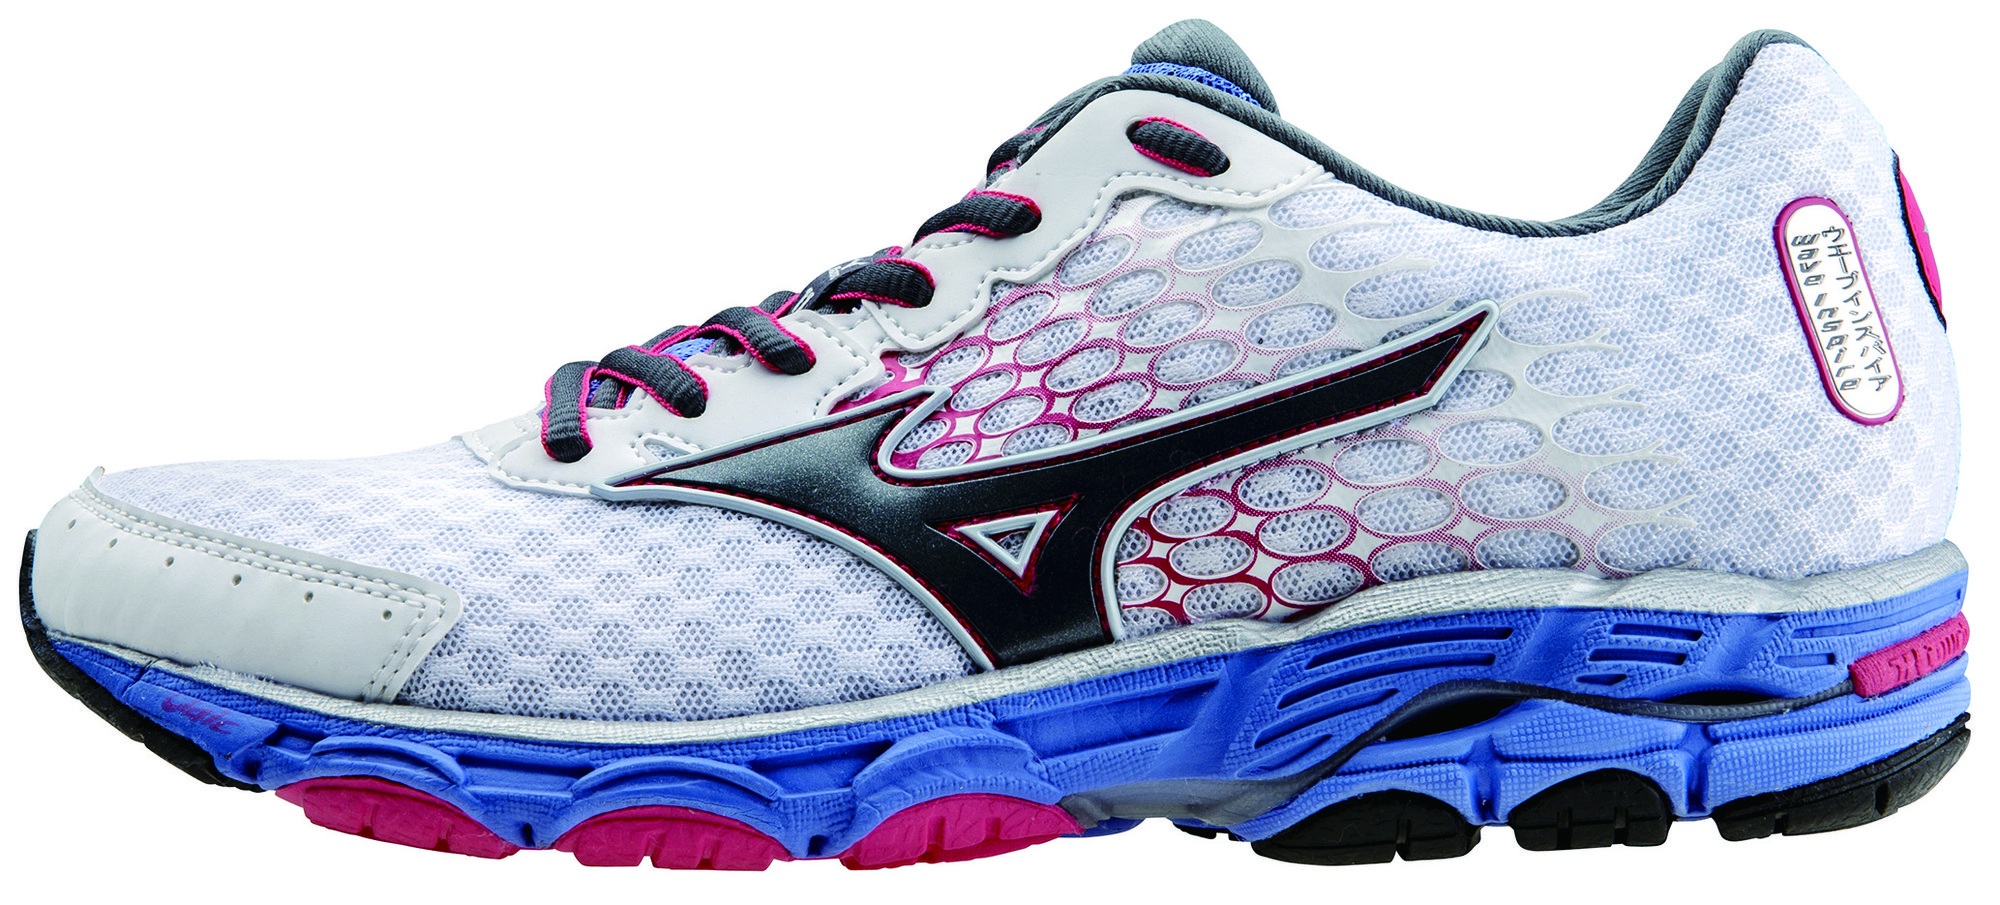 Mizuno Lady Wave Inspire 11 in Weiß